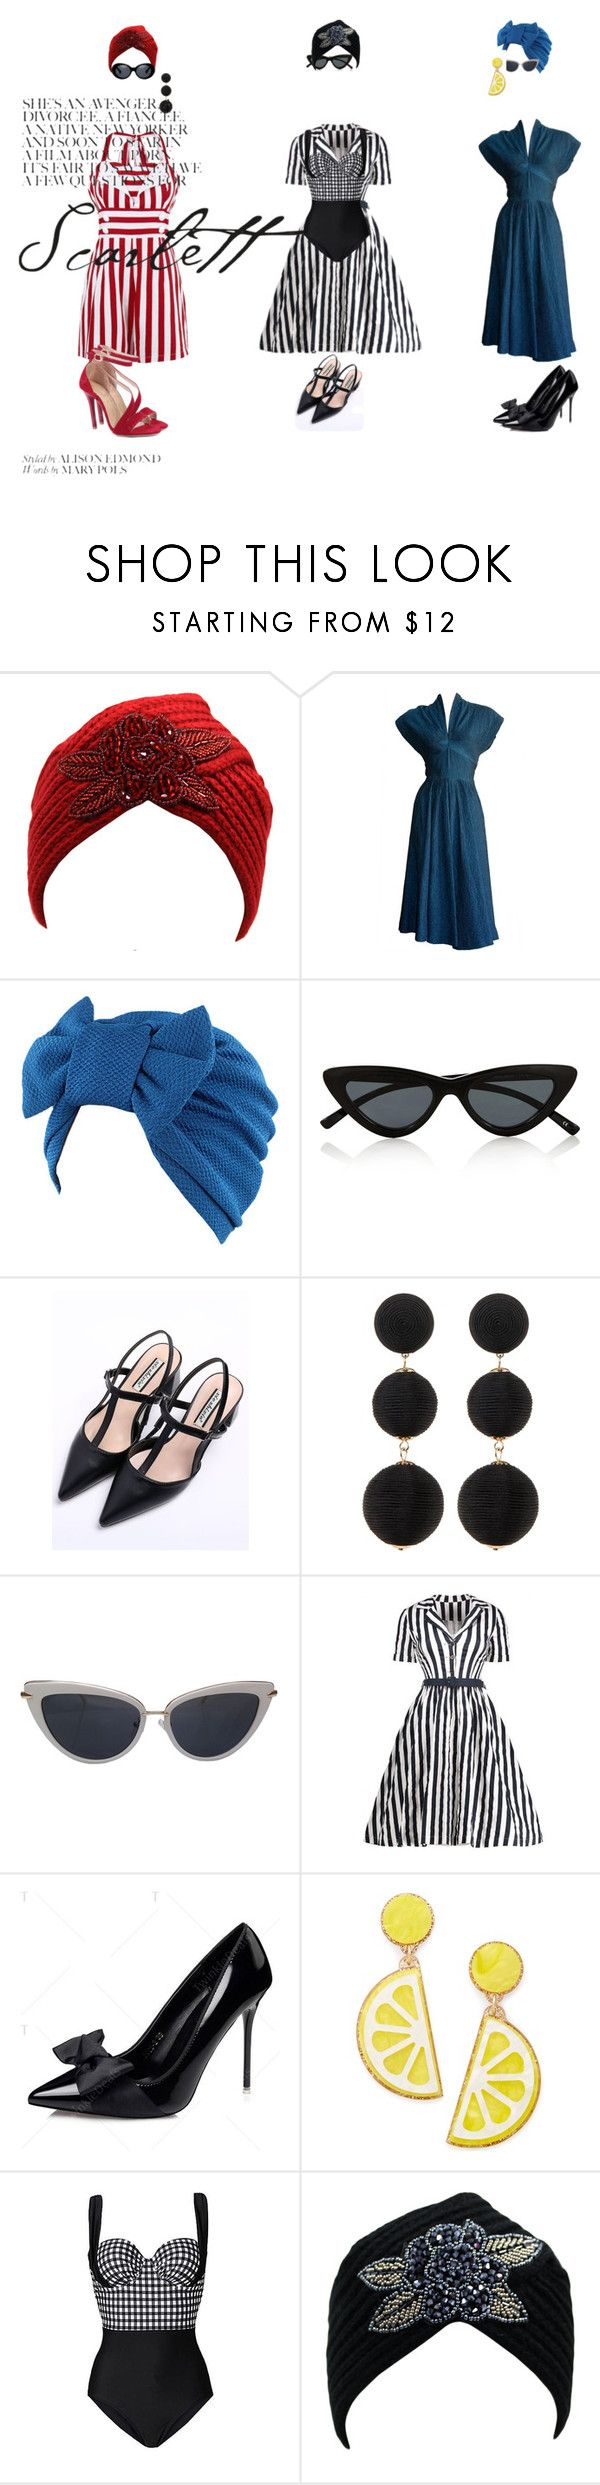 """""""fashion bestie"""" by coolsoniccat on Polyvore featuring Le Specs, Cara and Celebrate Shop"""